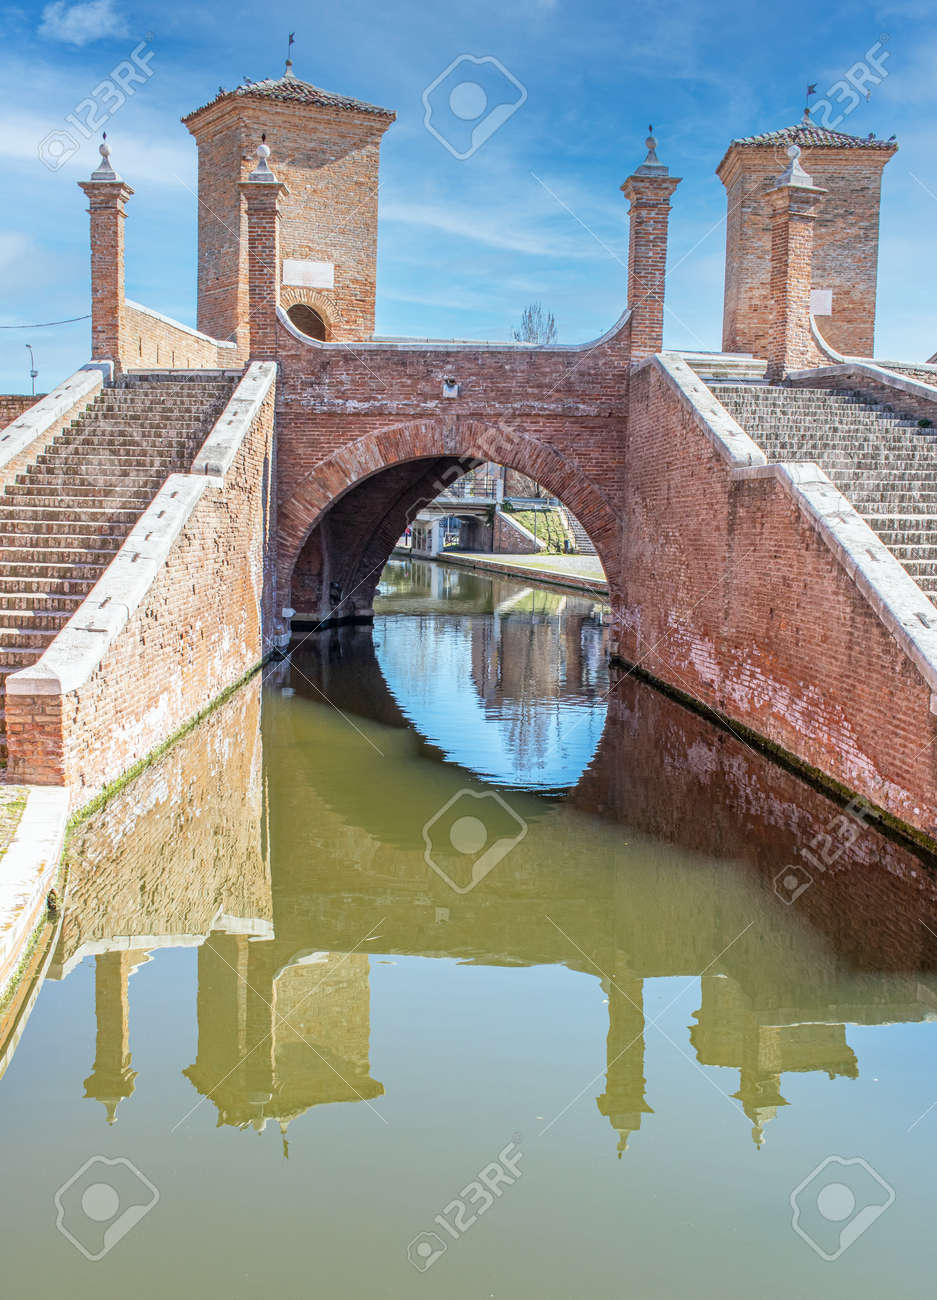 Comacchio, Italy - often compared to Venice for the canals and the architecture, Comacchio displays one of the most characteristic old towns in Emilia Romagna - 170448991